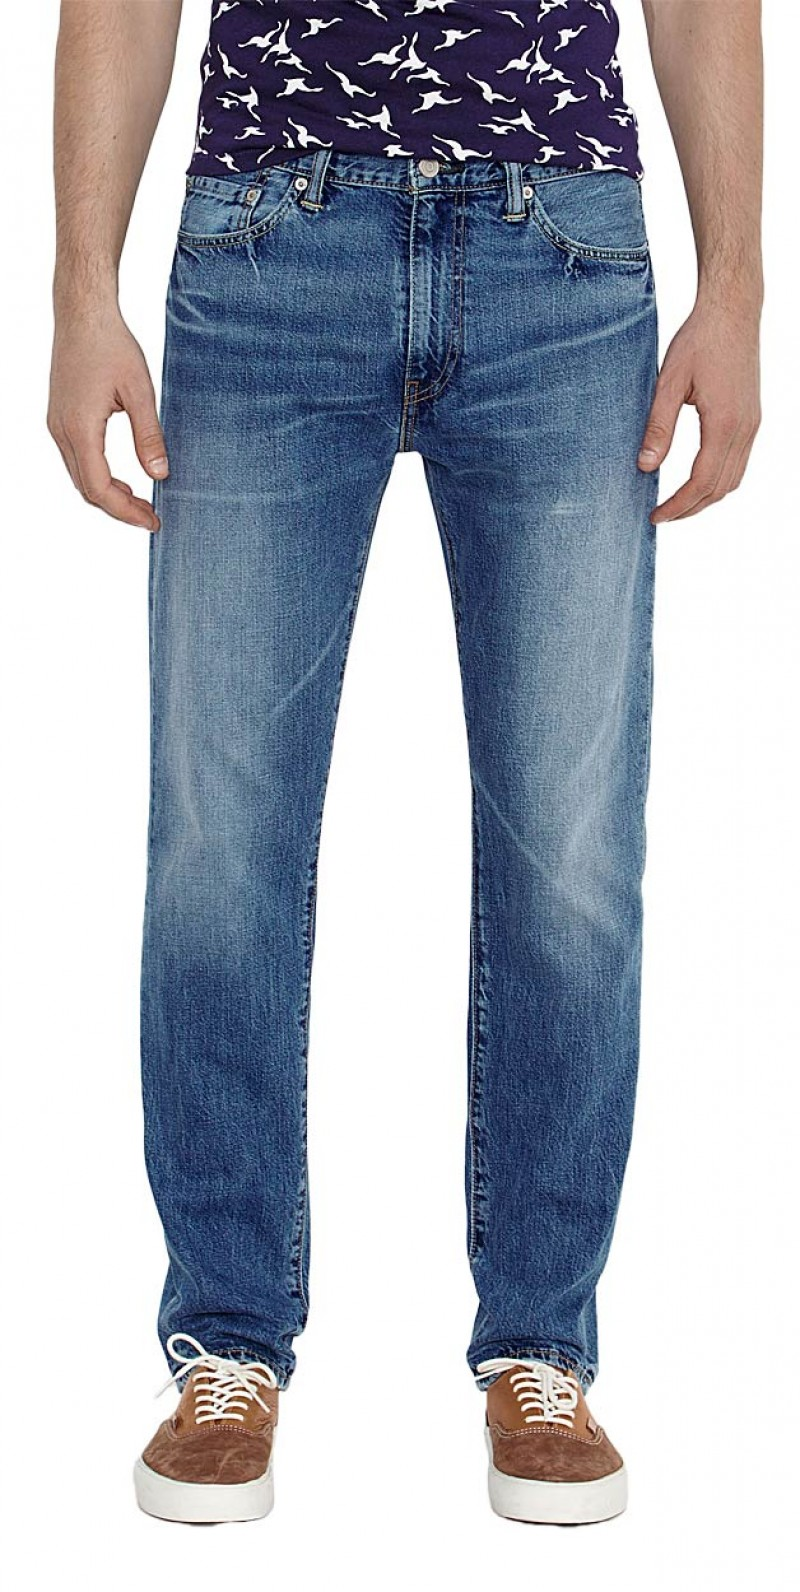 Levis 508 Jeans- Regular Tarped - Marin